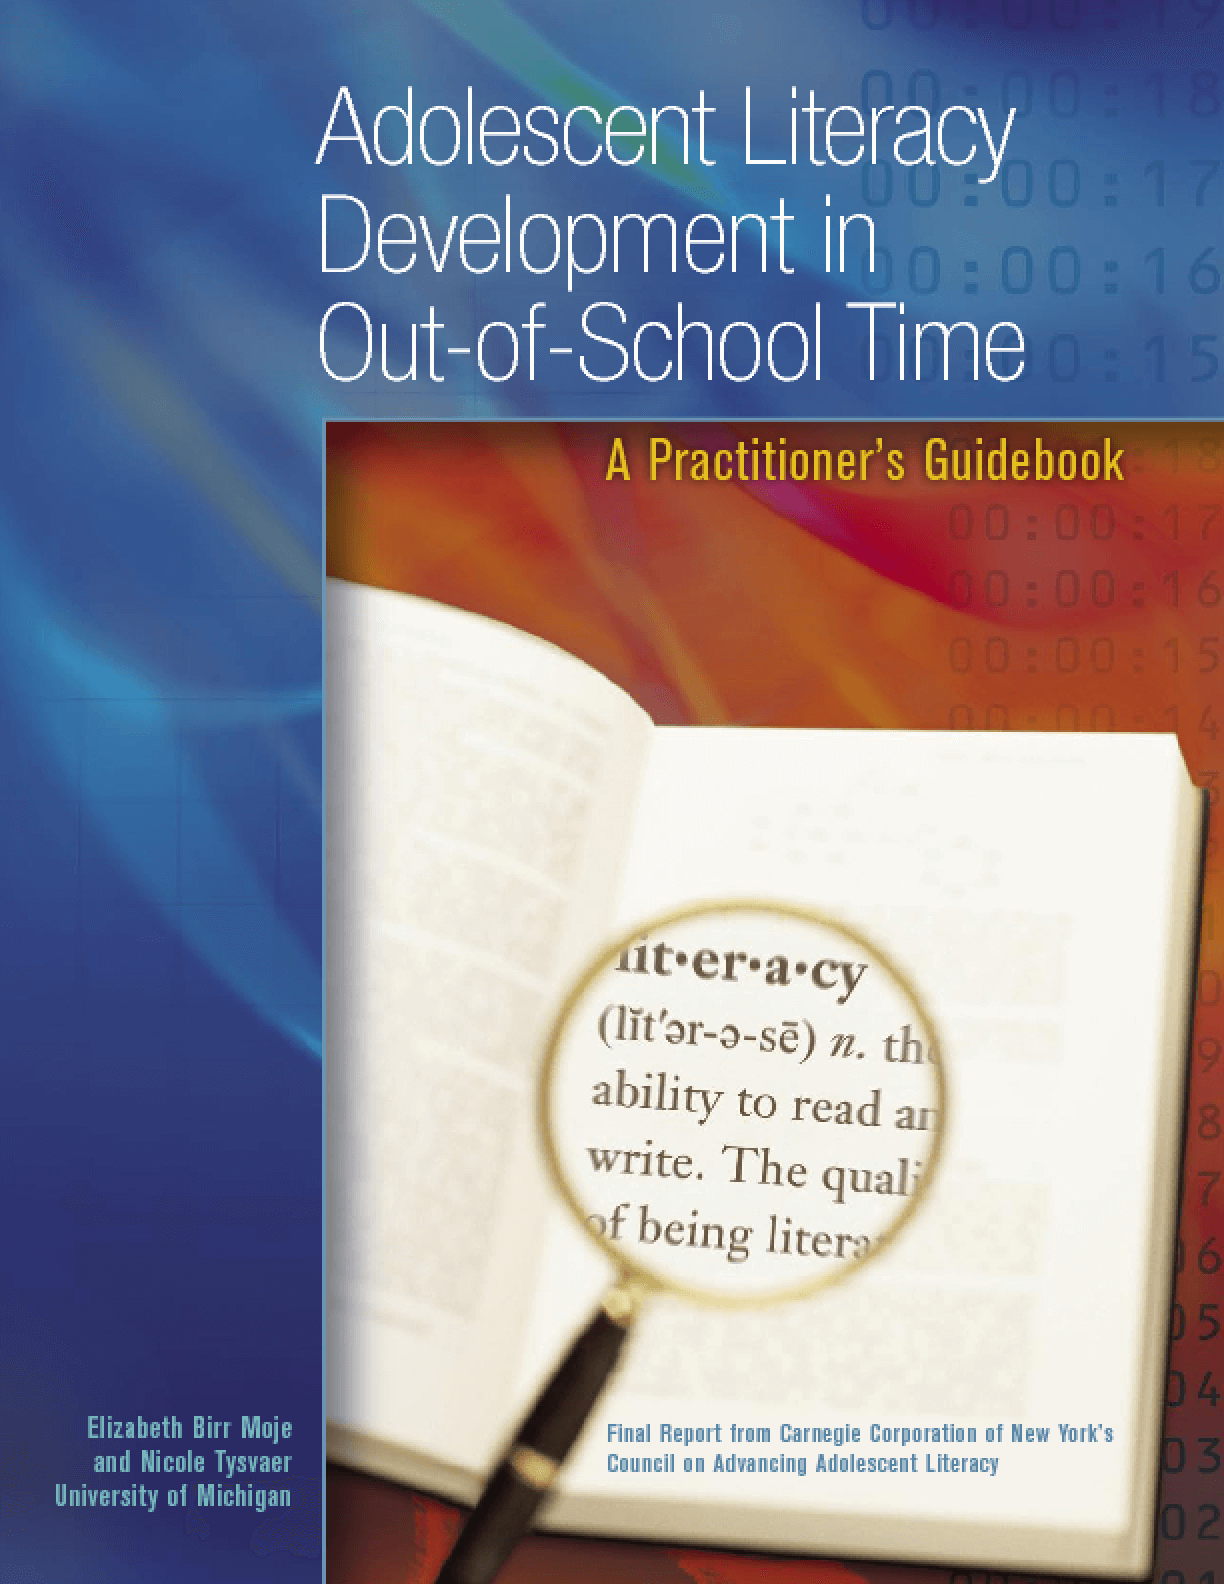 Adolescent Literacy Development in Out-of-School Time: A Practitioner's Guidebook